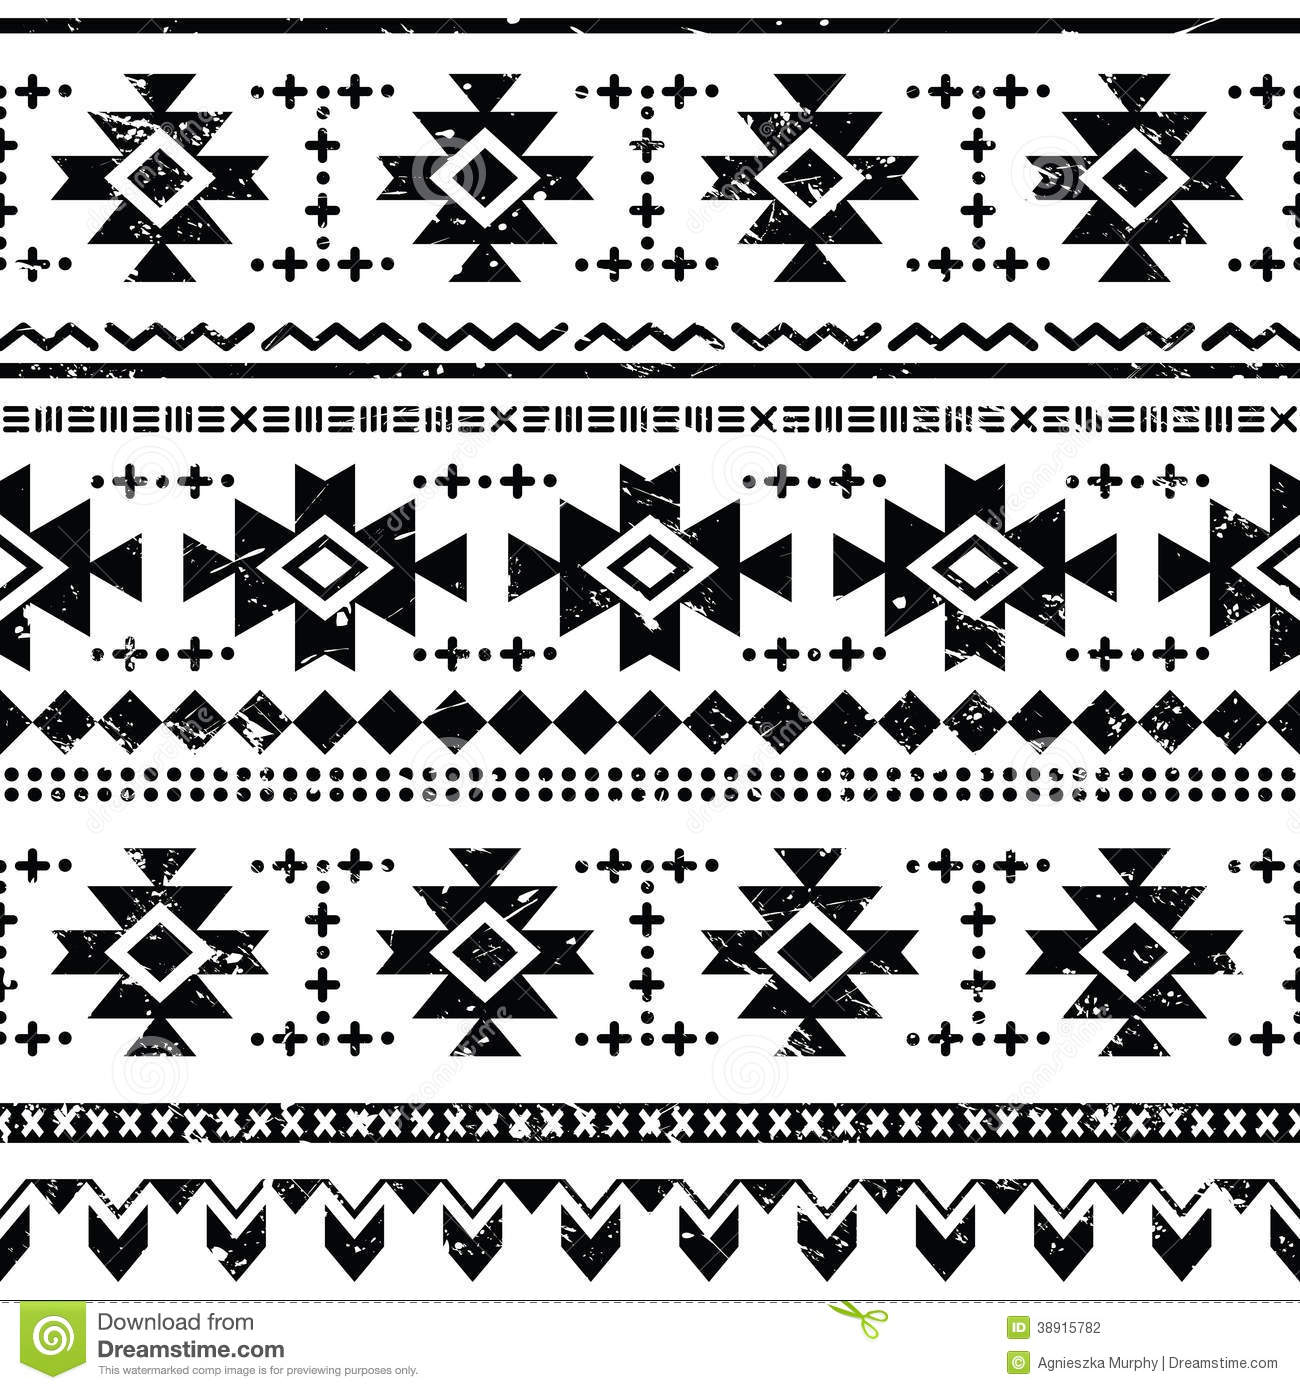 A Ad D Cffa Cd Ade D further Img also F E Da Ebcd F Cf D F moreover Pattern Native American Blankets Ideas as well Cea C B D Effdc Aafaec. on b